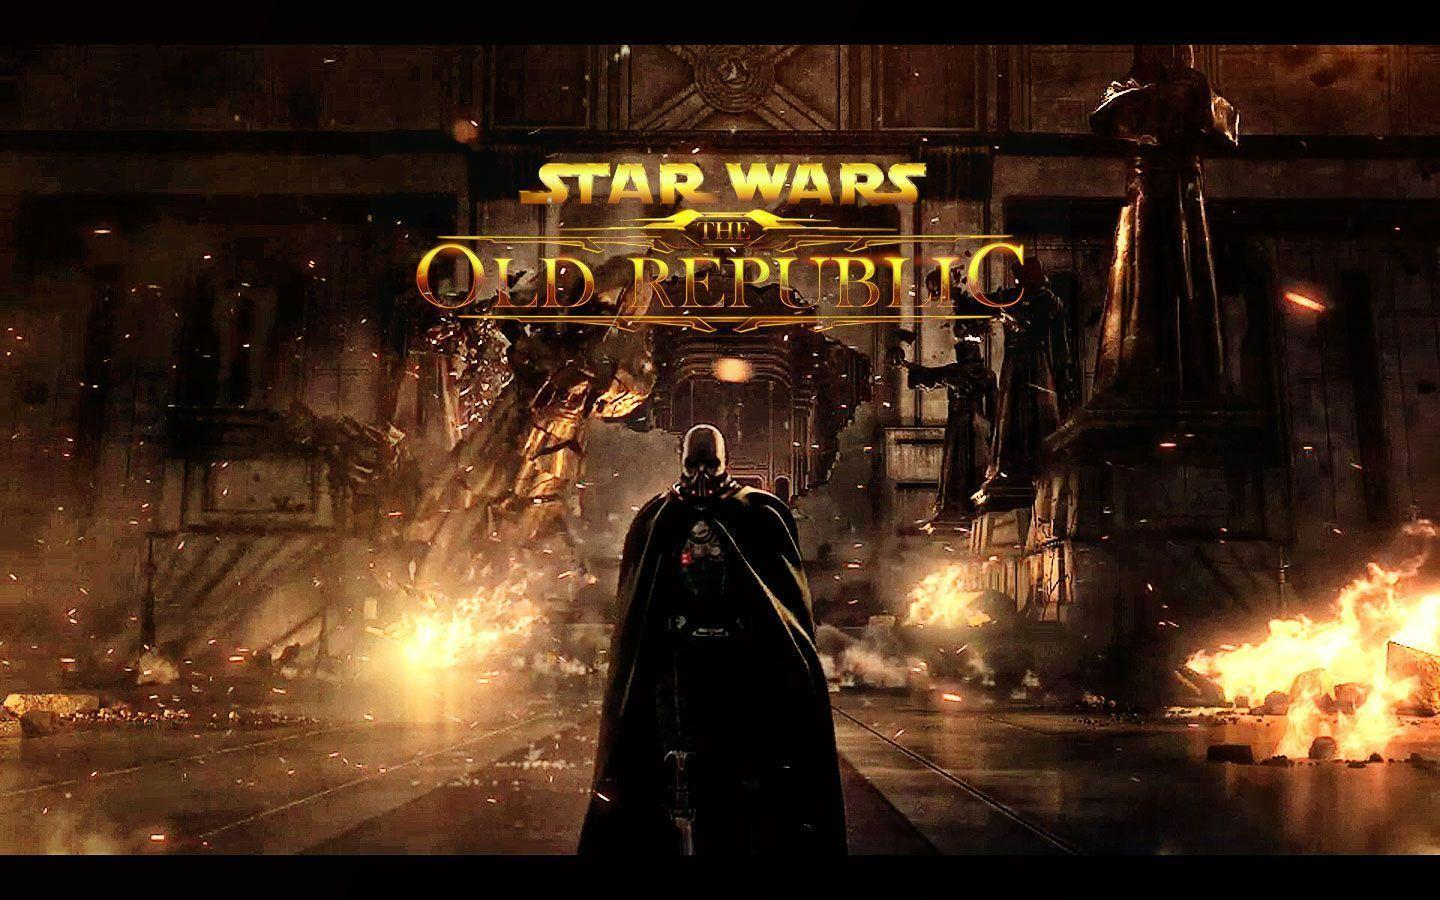 Star Wars The Old Republic Wallpapers 1440x900